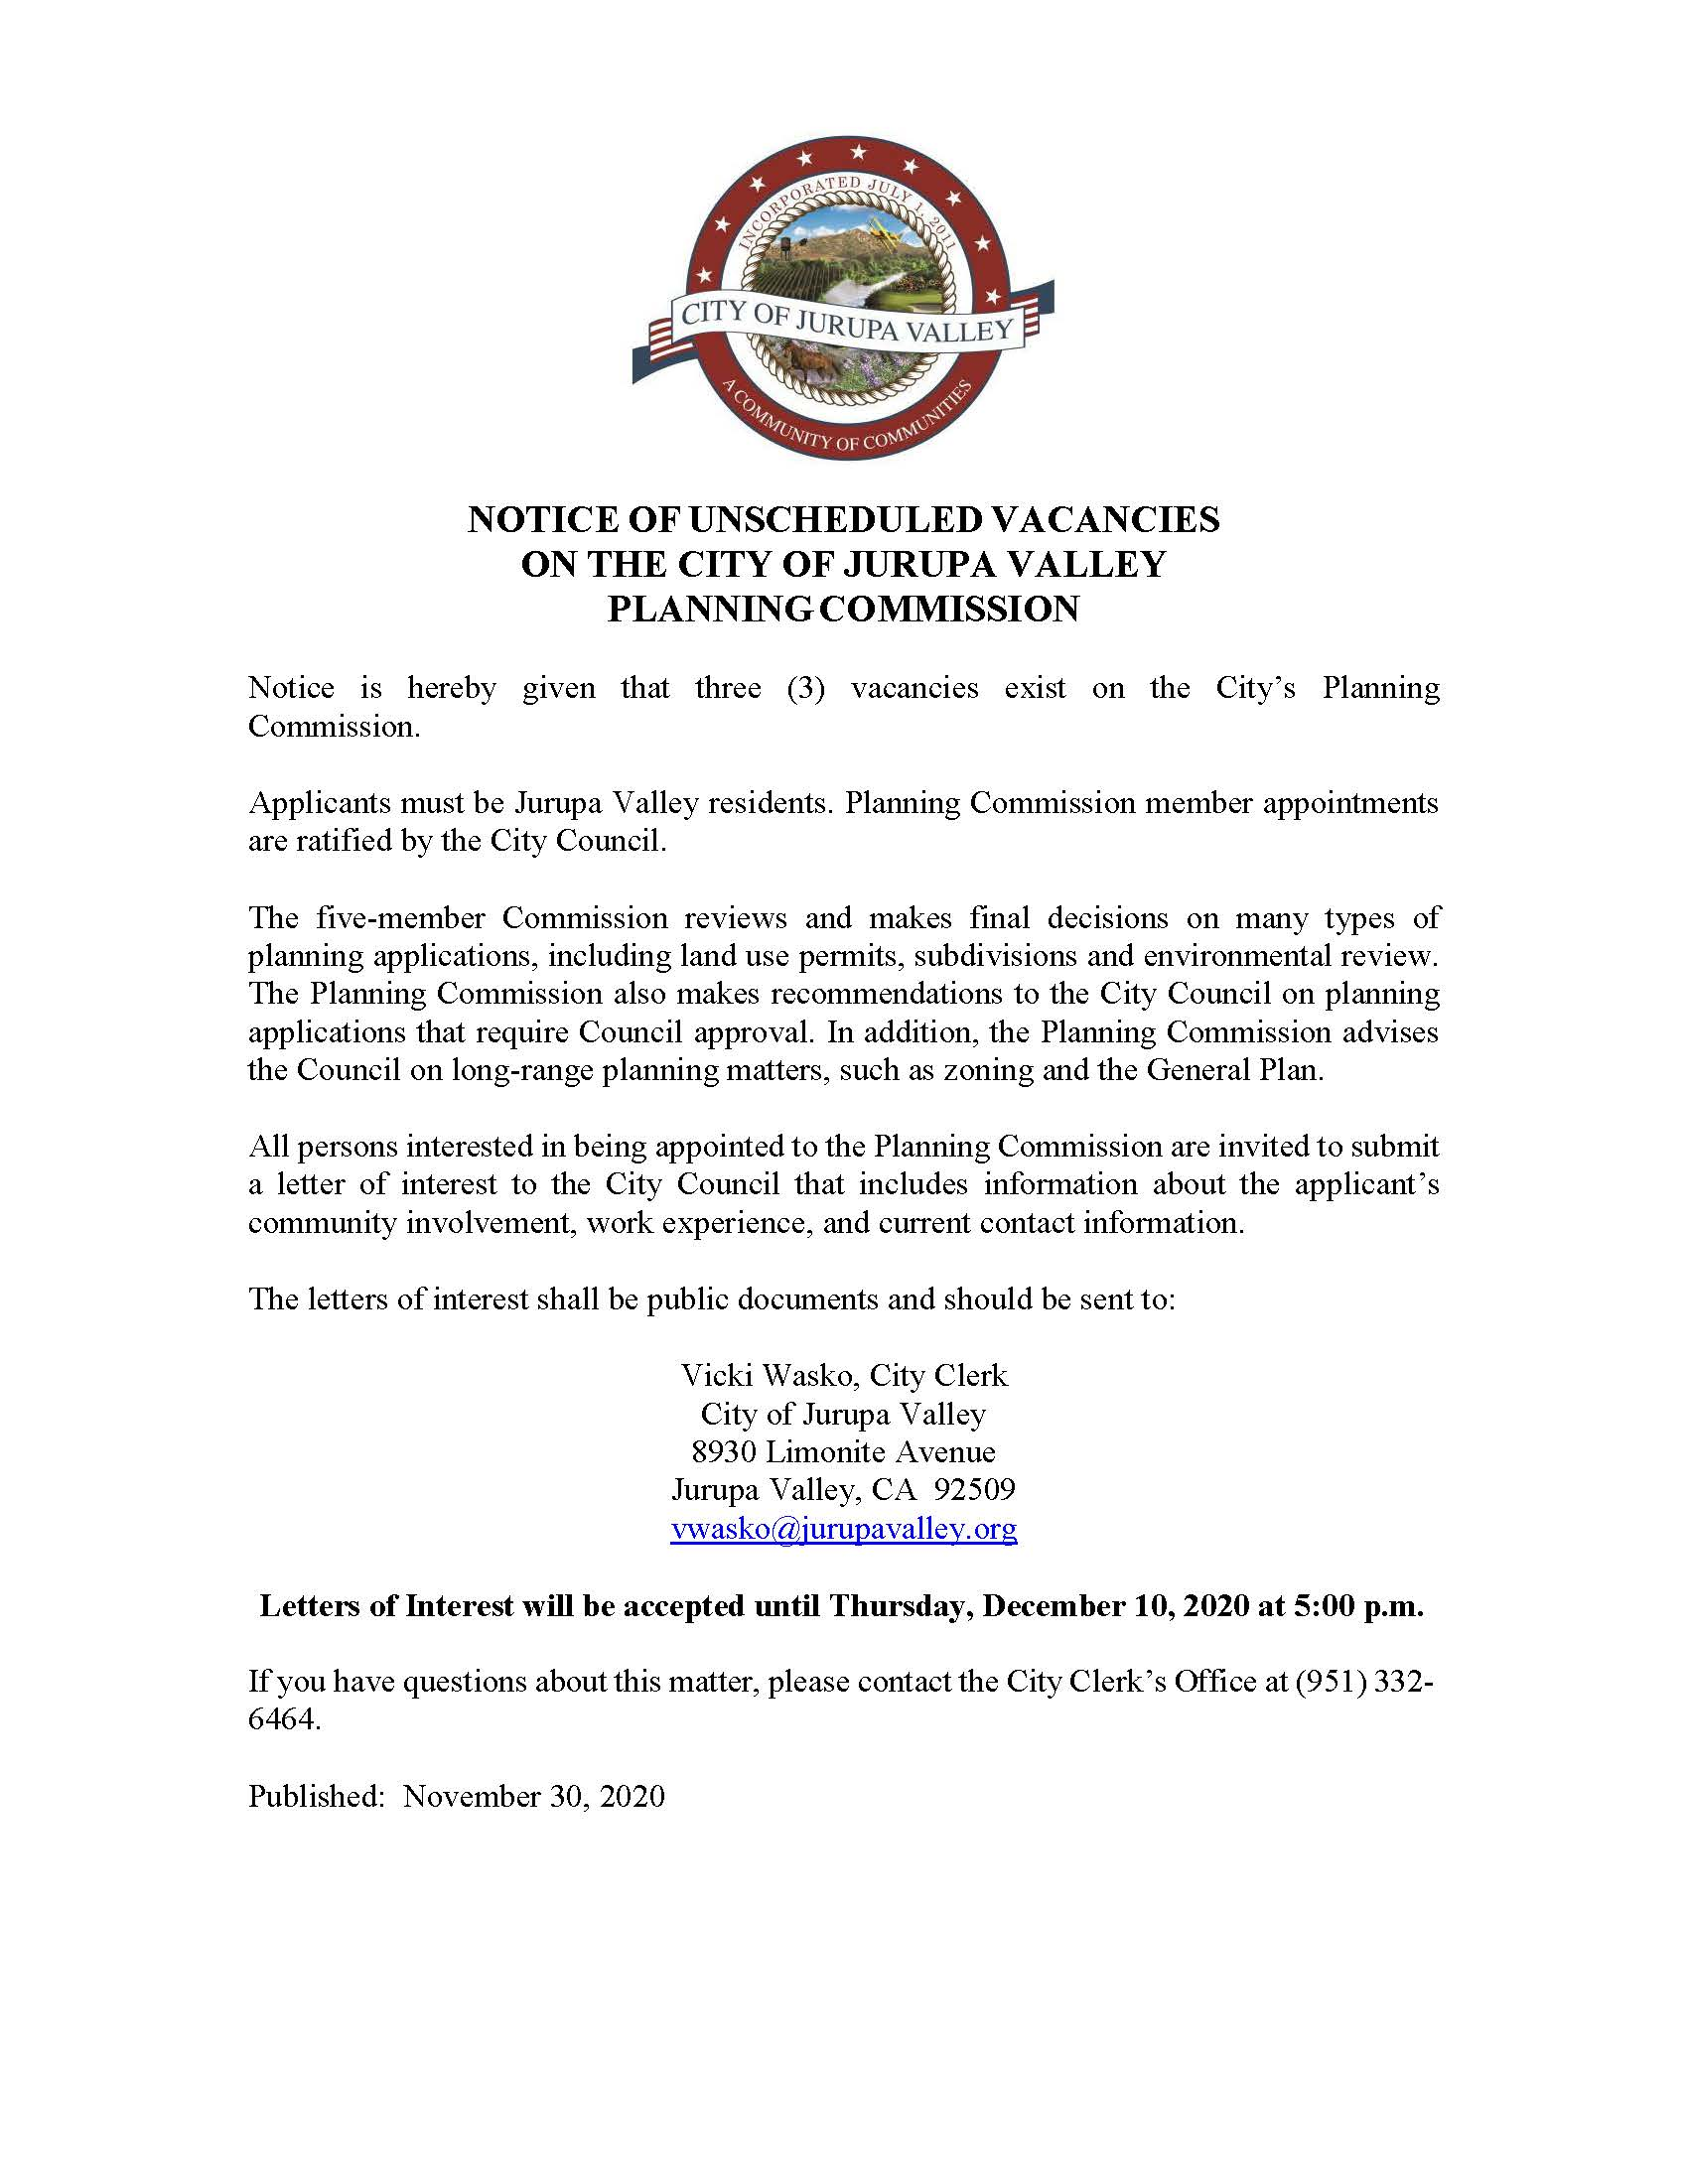 111320 - NOTICE OF UNSCHEDULED VACANCIES